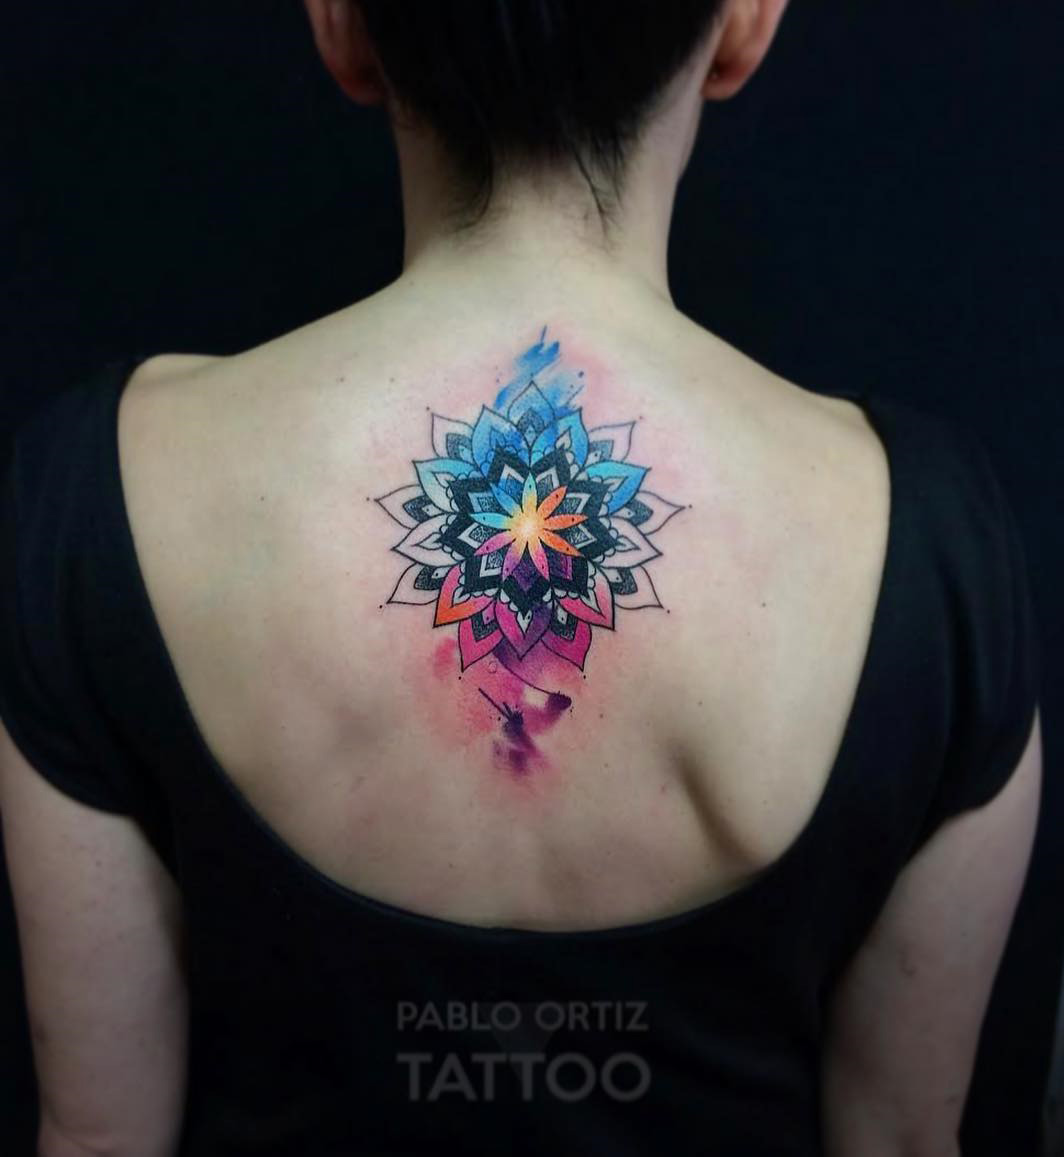 Tattoo Ideas On Back: Mandala Tattoos